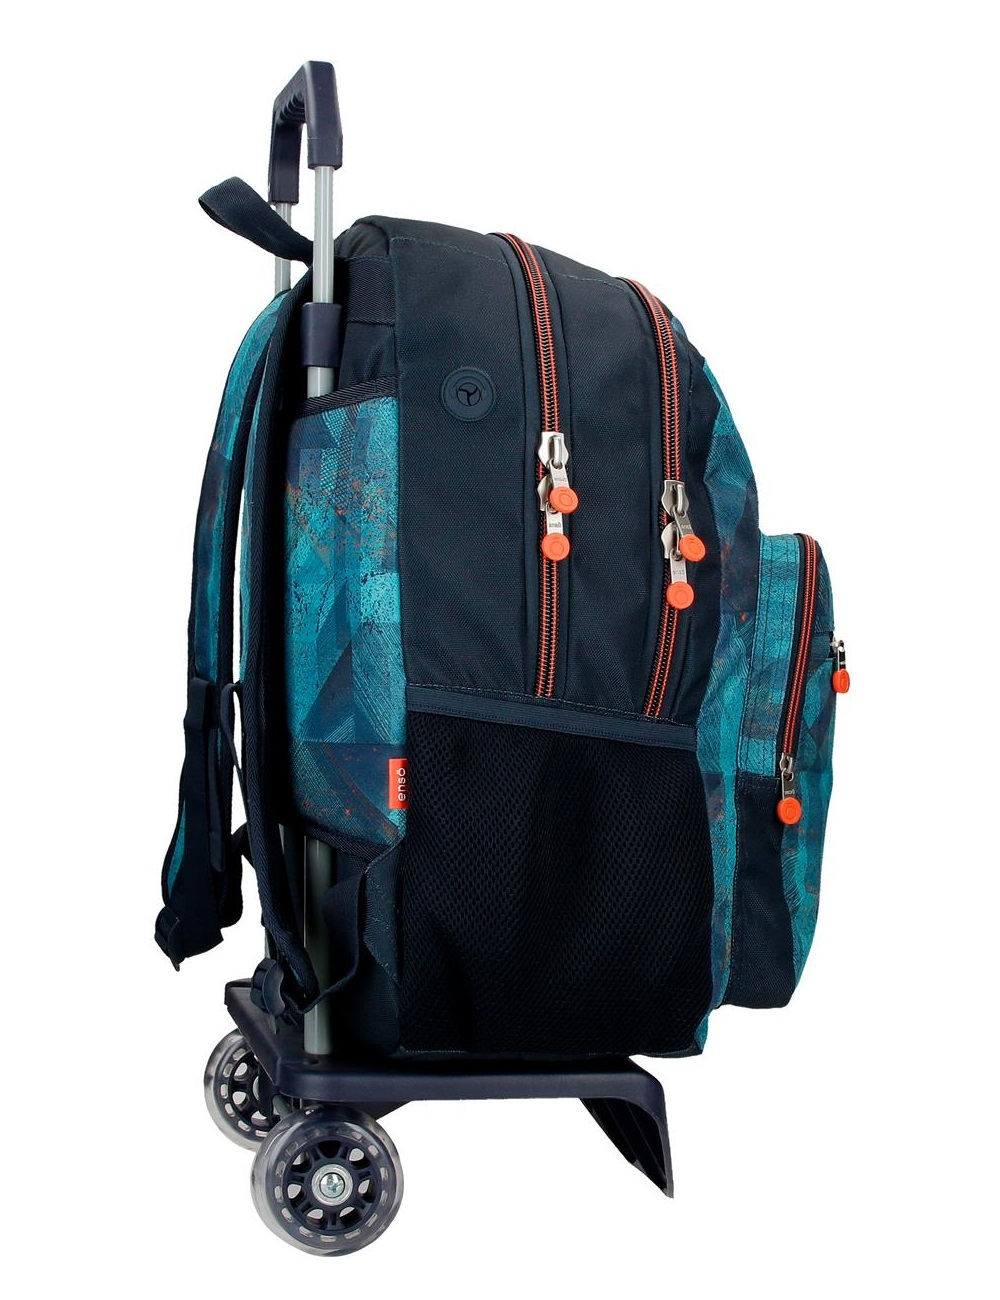 90824T1 Mochila Grande 46 cm Doble Compartimento con Ruedas Enso Try Harder